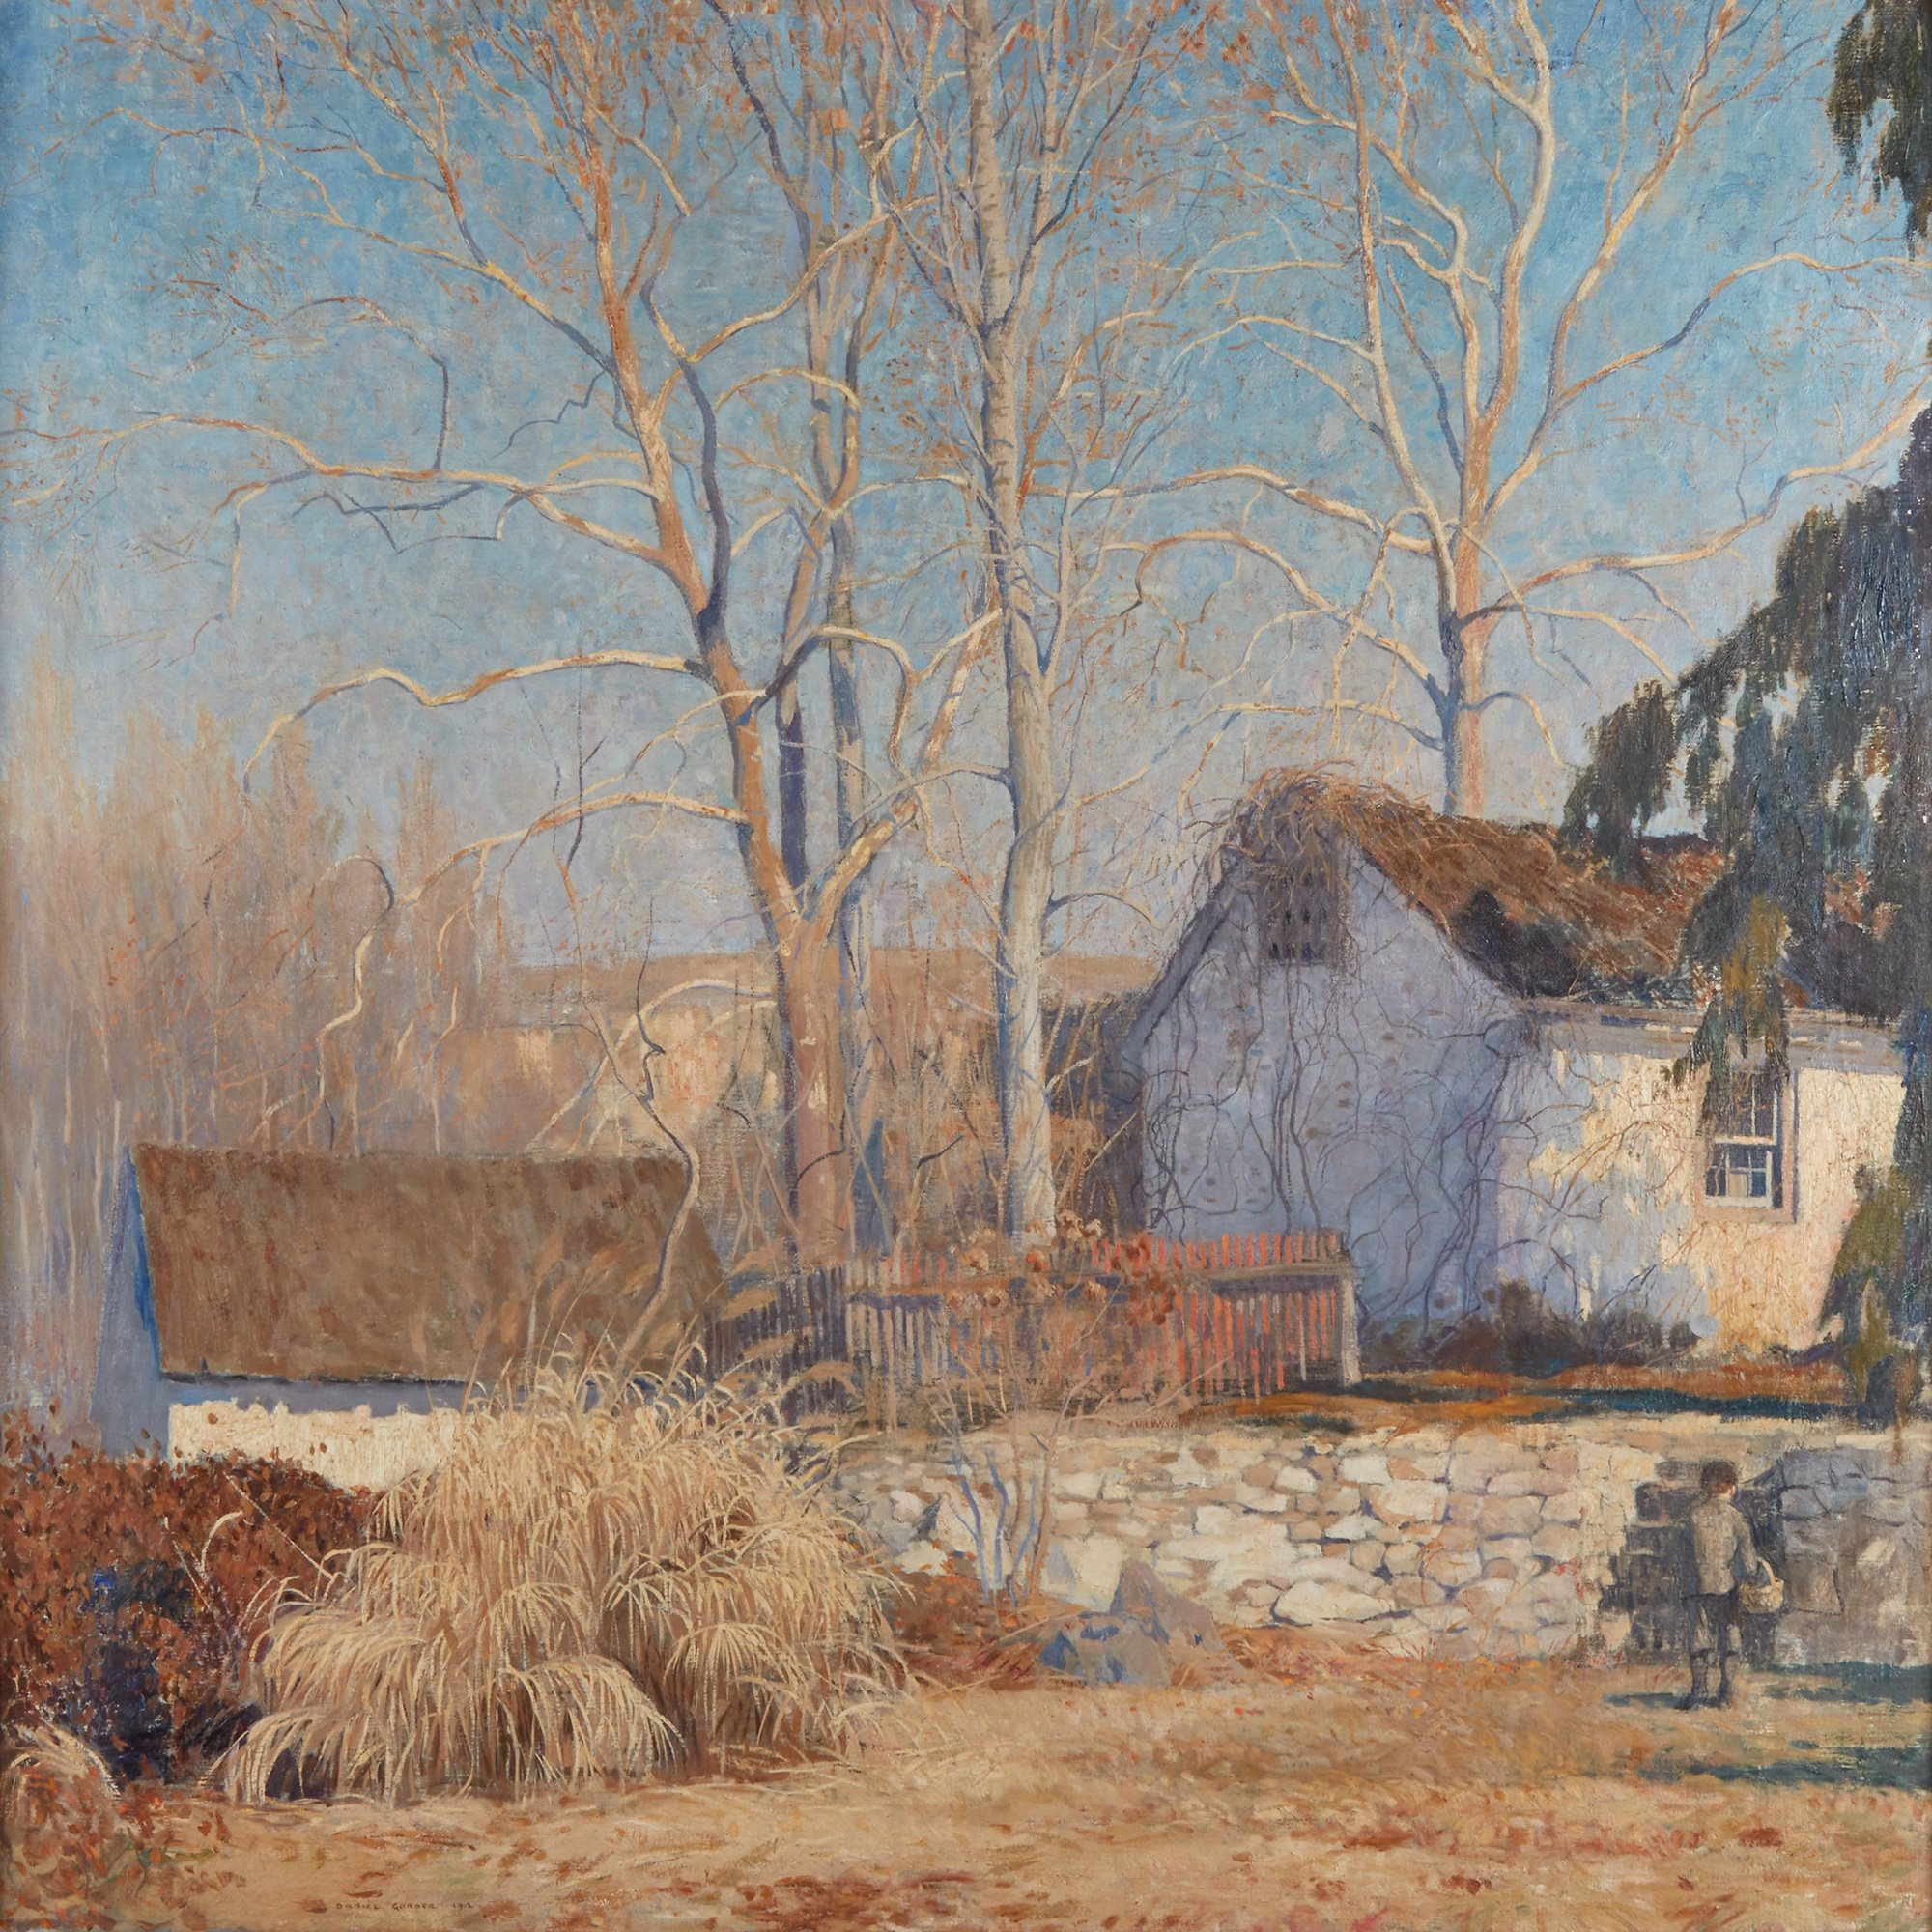 Daniel Garber painting, The Last of Winter